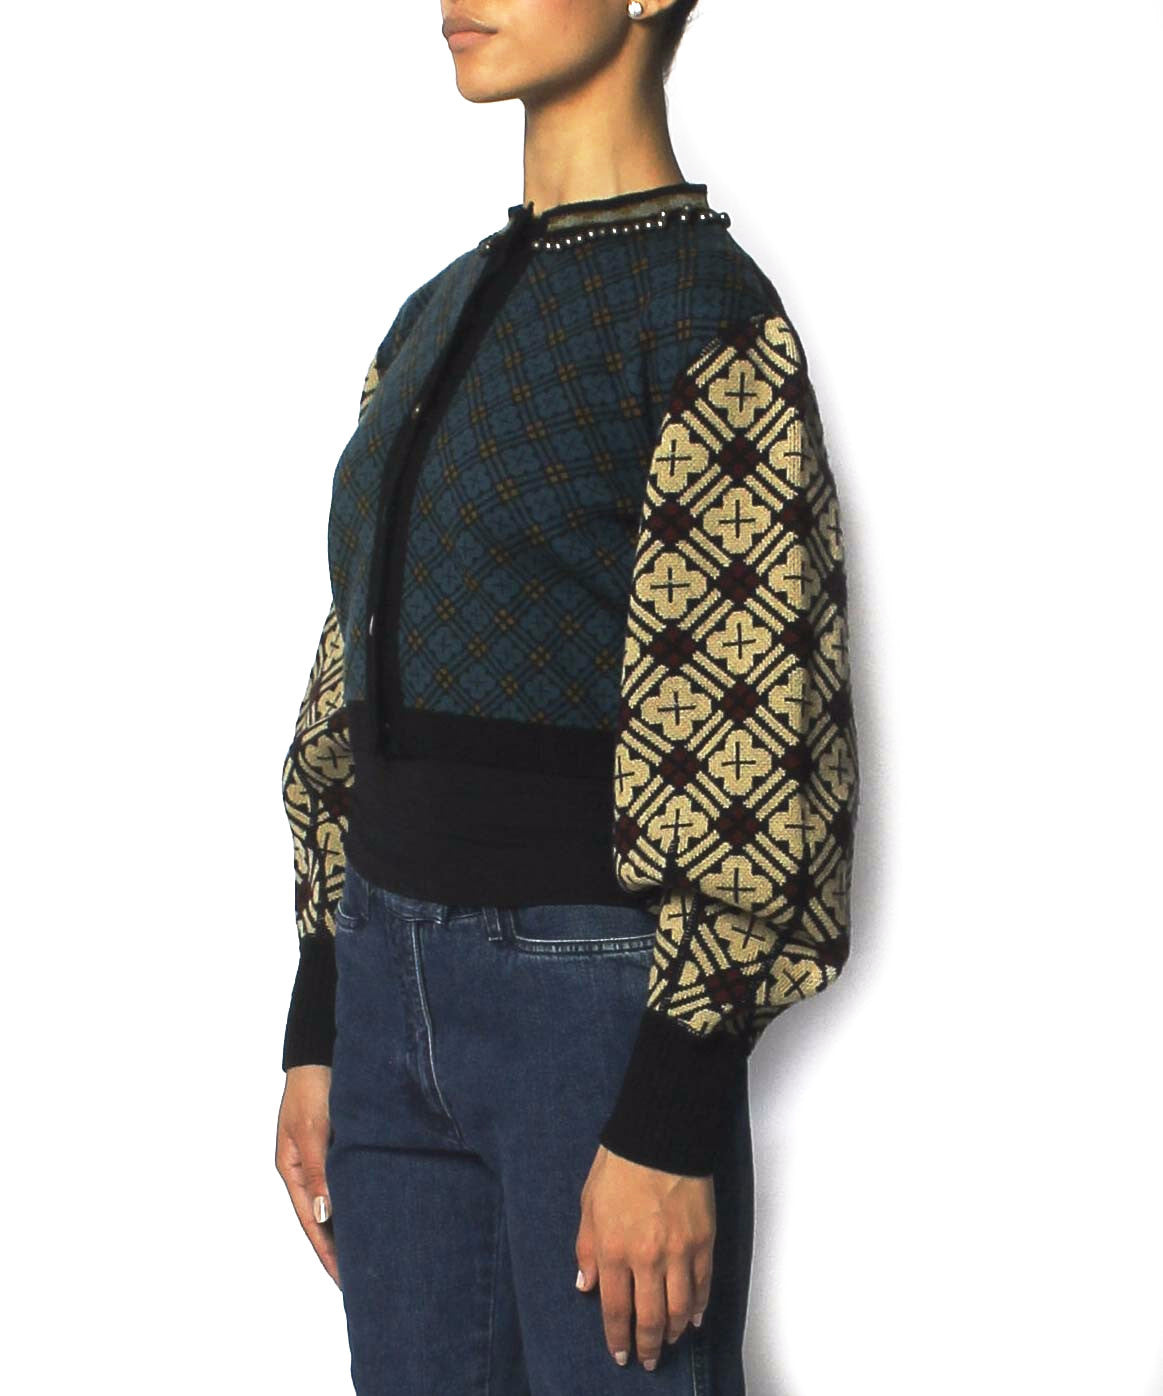 Jean Paul Gaultier Printed Wool Knit Cardigan With Bell Beaded Neckline - C.Madeleine's